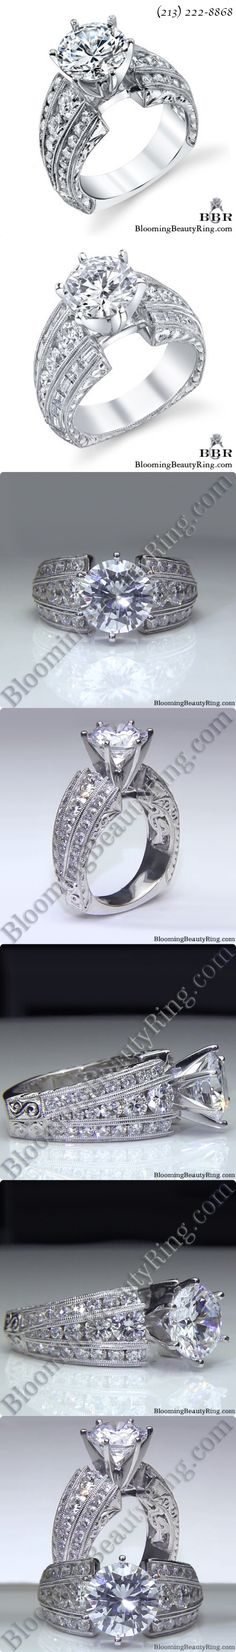 One of our custom engagement rings showing 2 different configurations. Many of our engagement rings can be made with different shape diamonds in the band of the ring as shown in the top 2 pictures. These rings have approximately 2 carats of accent diamonds depending upon the configuration that you choose. BloomingBeautyRing.com (213) 222-8868